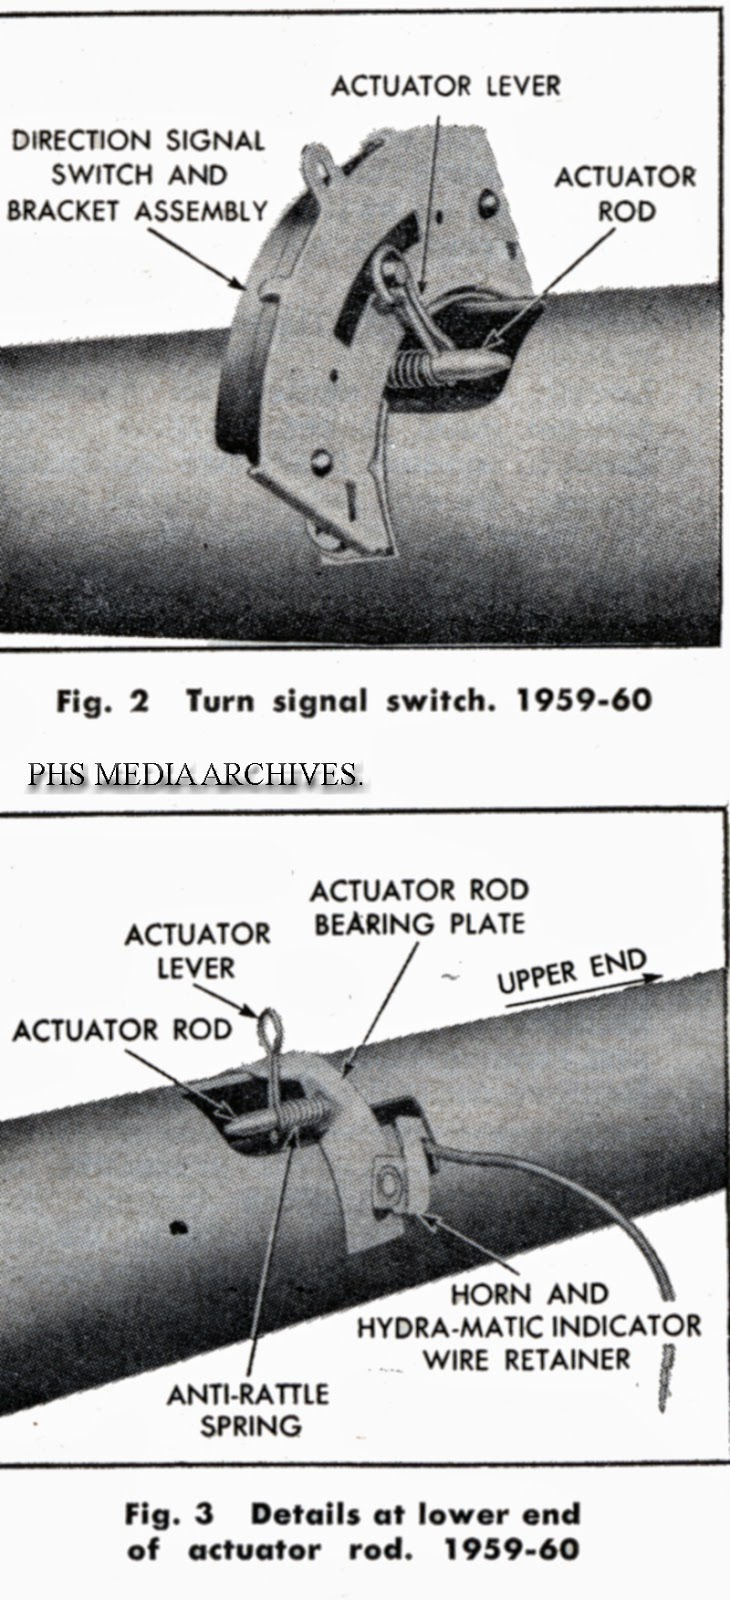 hight resolution of 1959 60 switch is relatively large but easy to change as its completely external